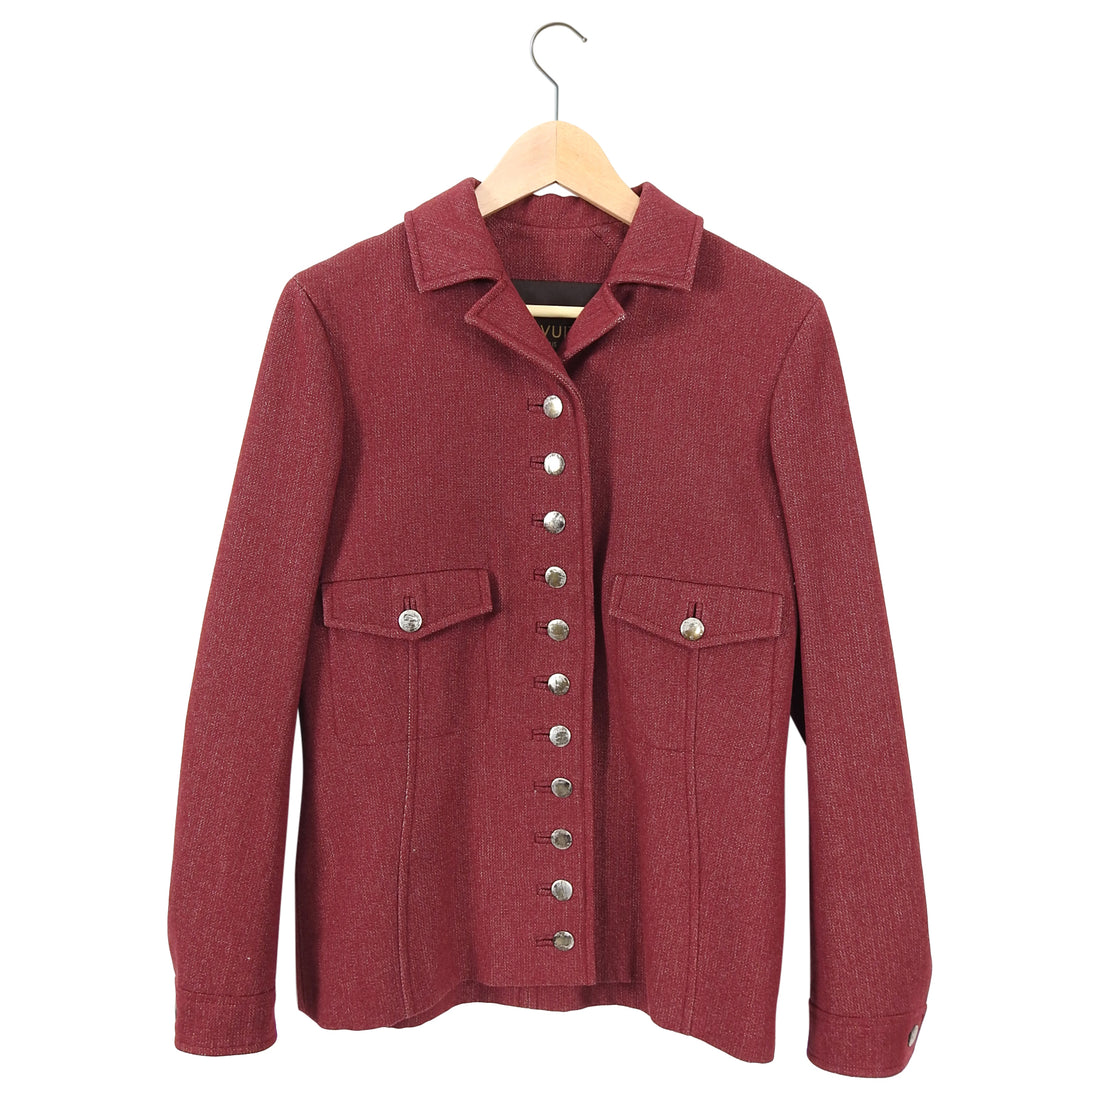 Louis Vuitton Red Wool Military Style Jacket - 38 / 6